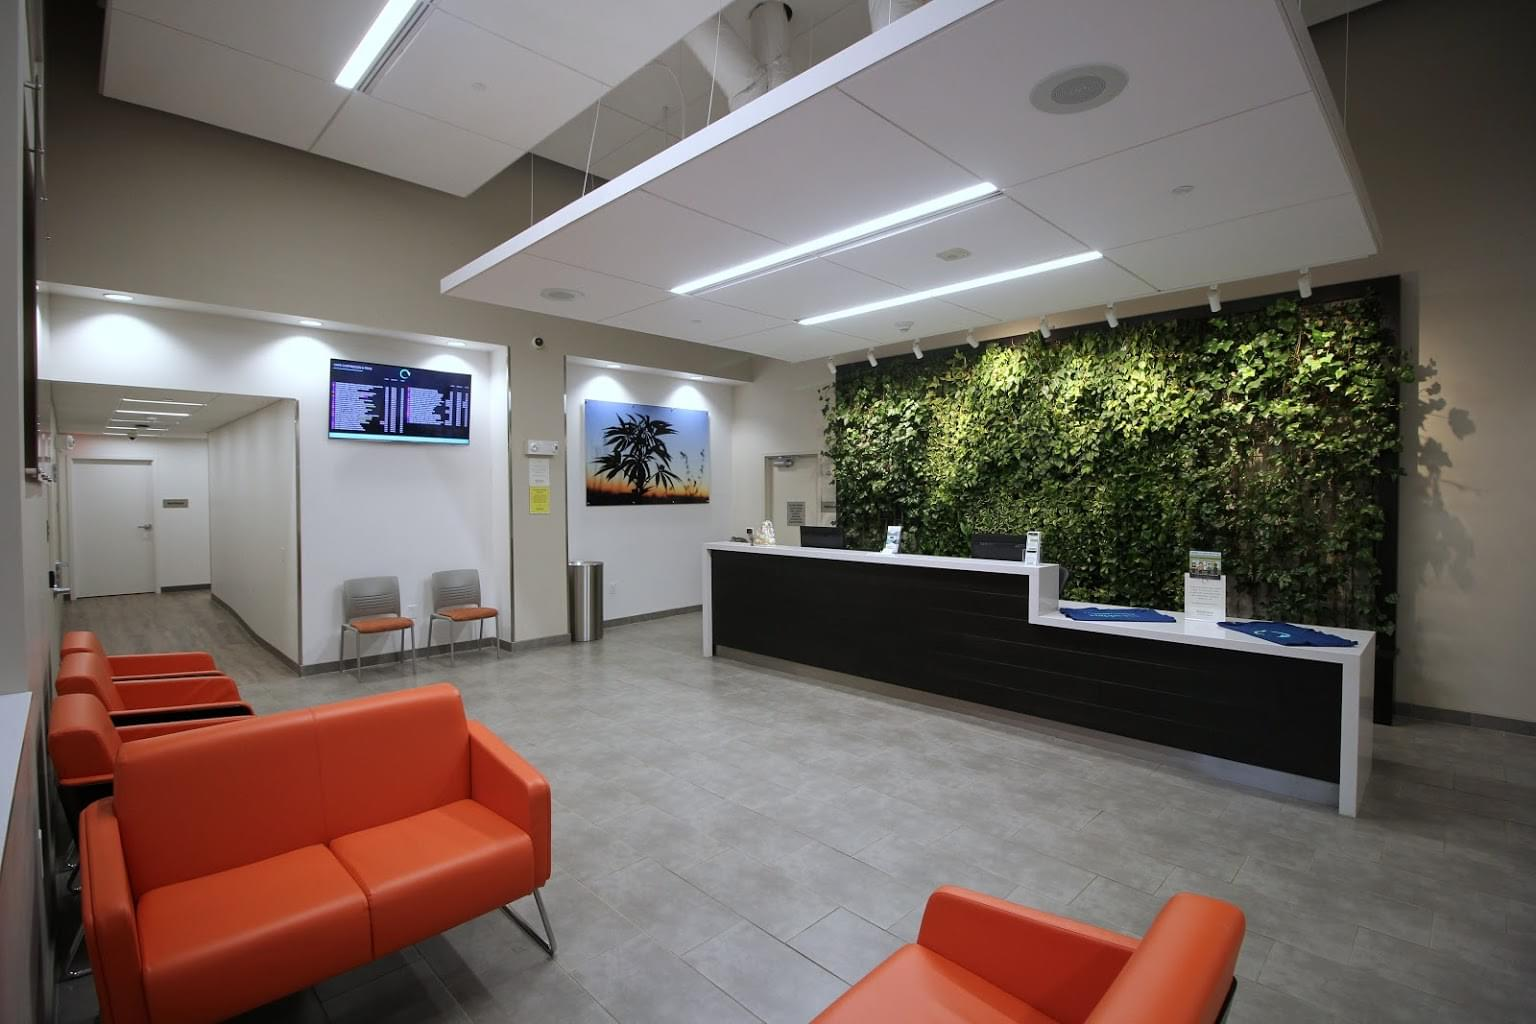 Restore Integrative Wellness Center medical marijuana dispensary in Frankford, PA